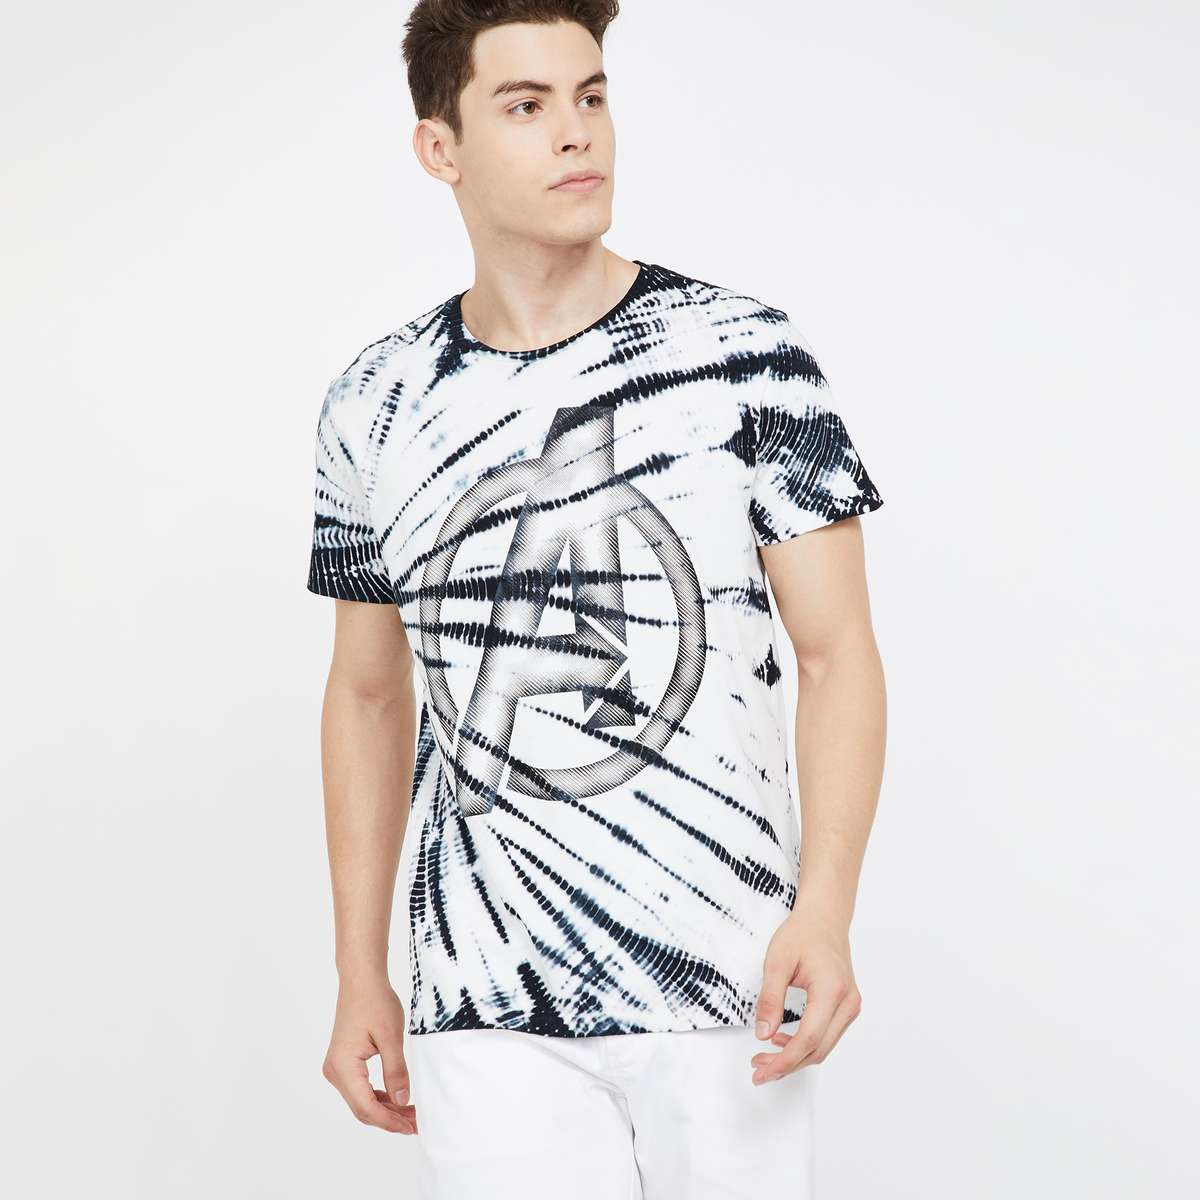 10.FREE AUTHORITY Printed Regular Fit Crew Neck T-shirt